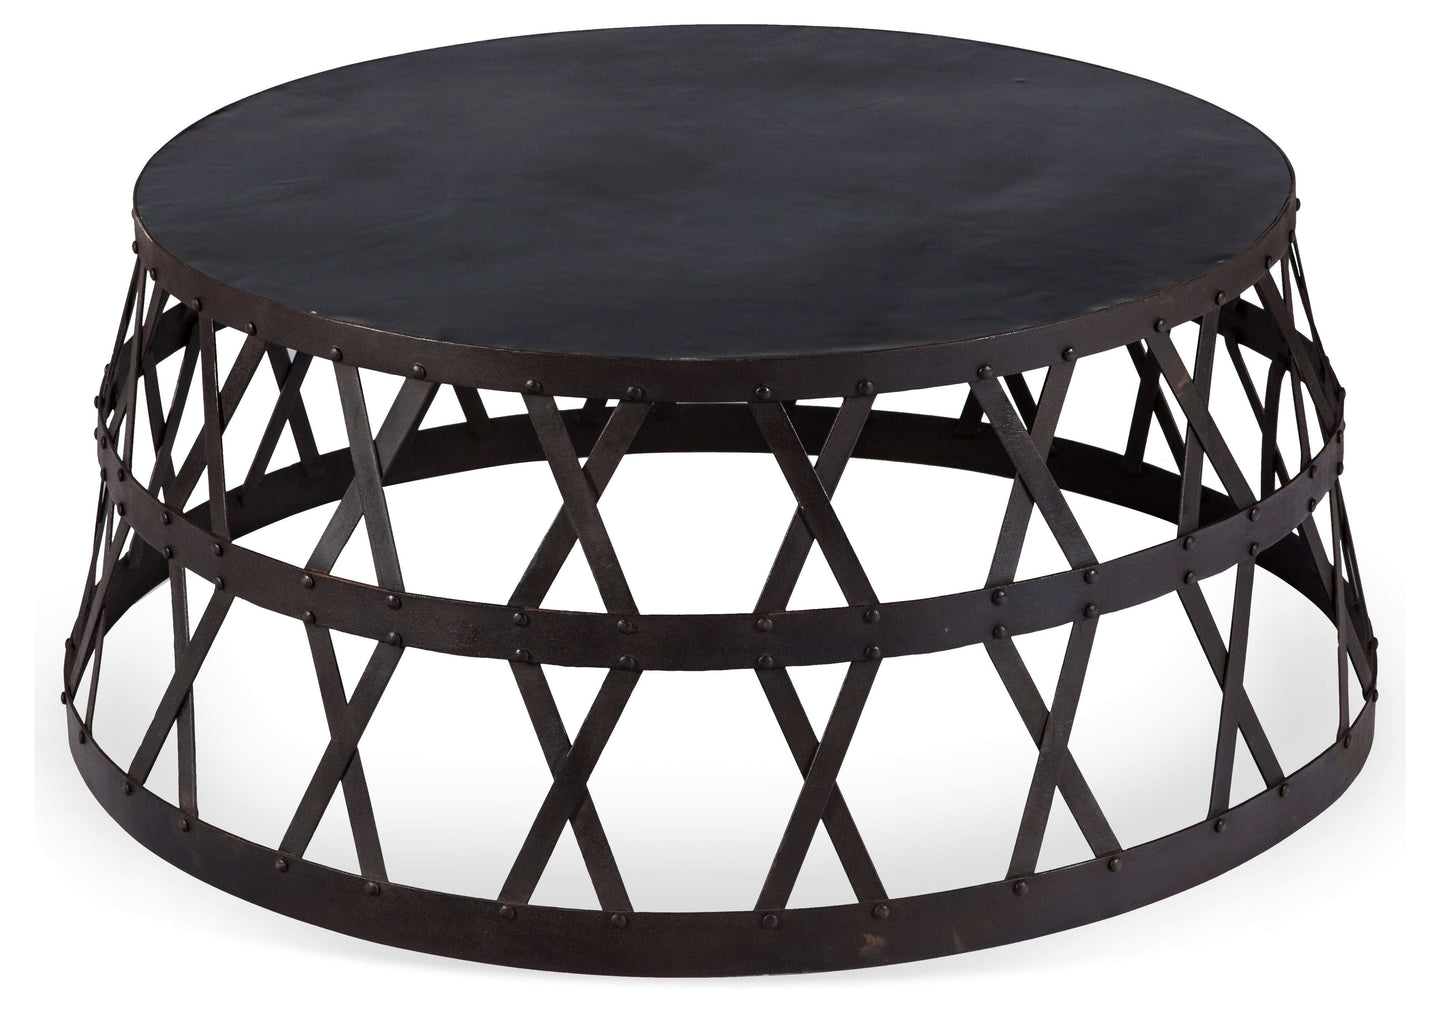 Bobo Intriguing Objects Elephant Coffee Table Iron Metal